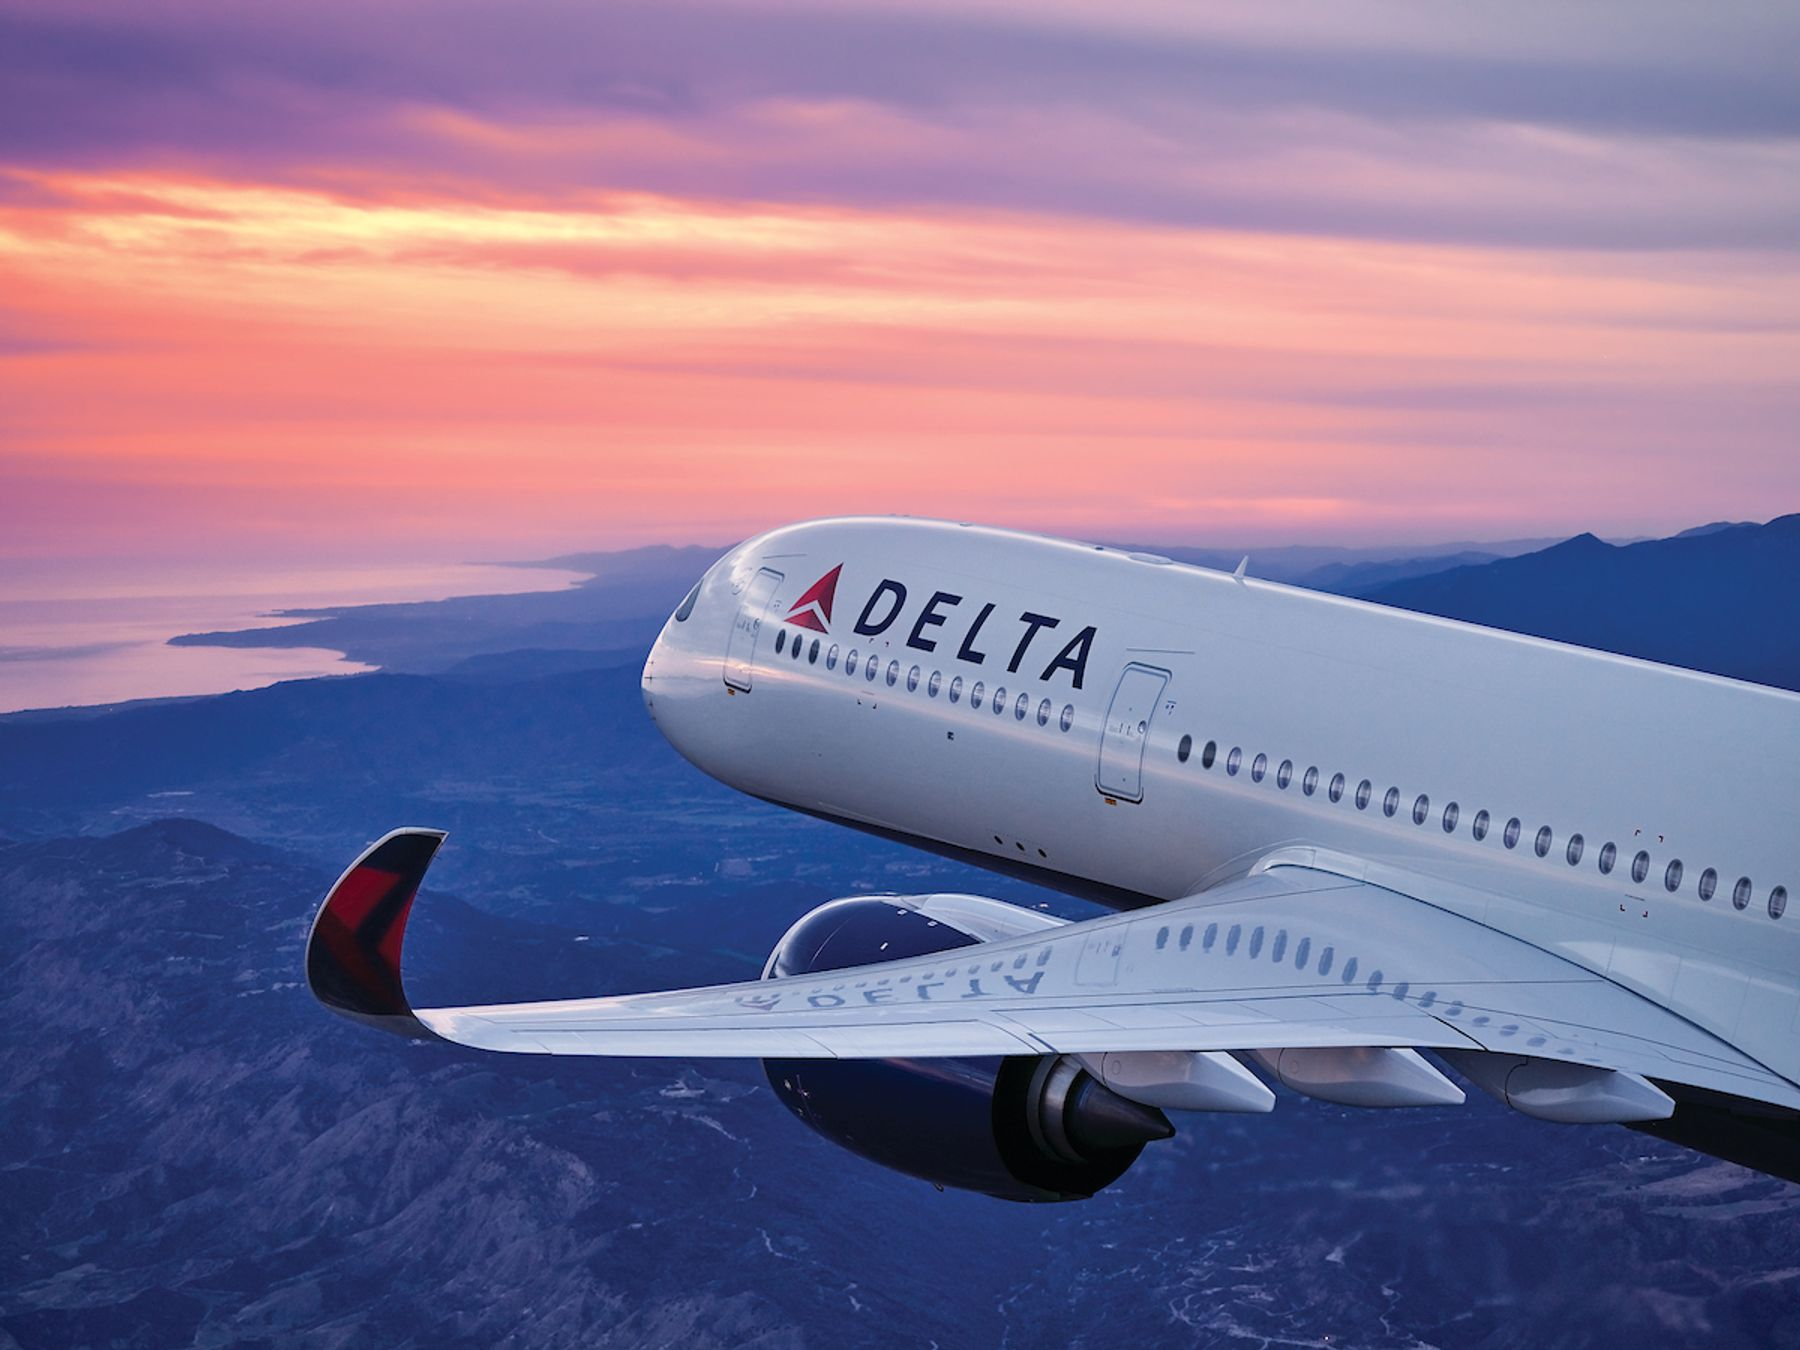 A Delta airlines plane crosses an orange and blue sky